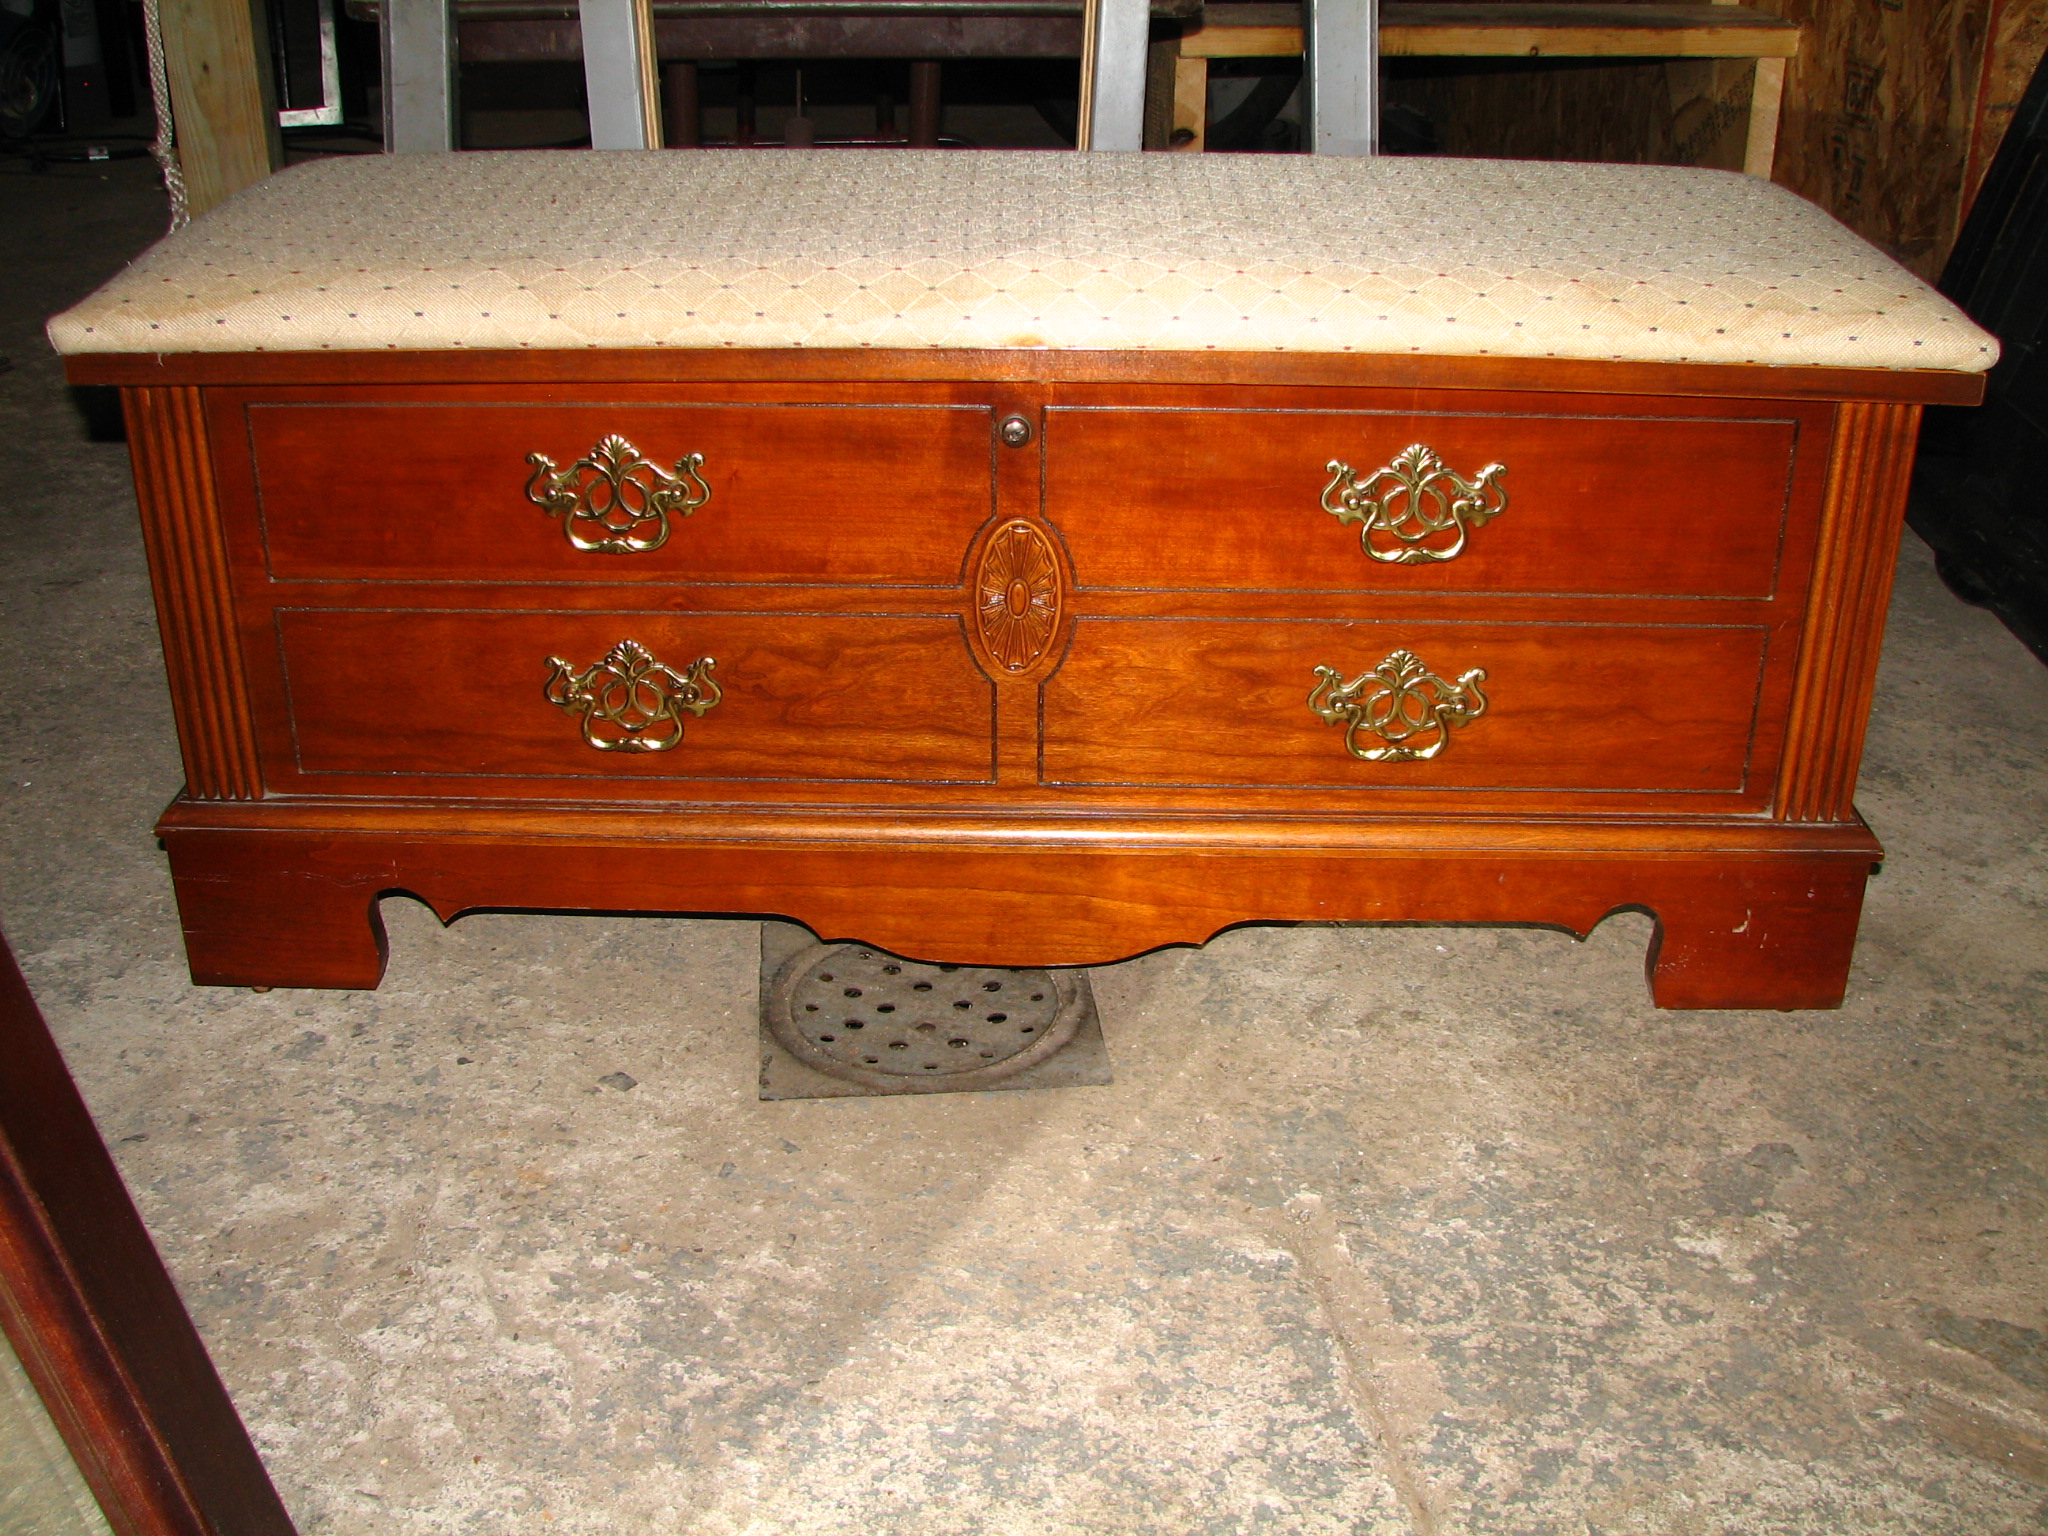 Tuesday S Treasures Cedar Chest Turned Into A Coffee Table Funcycled